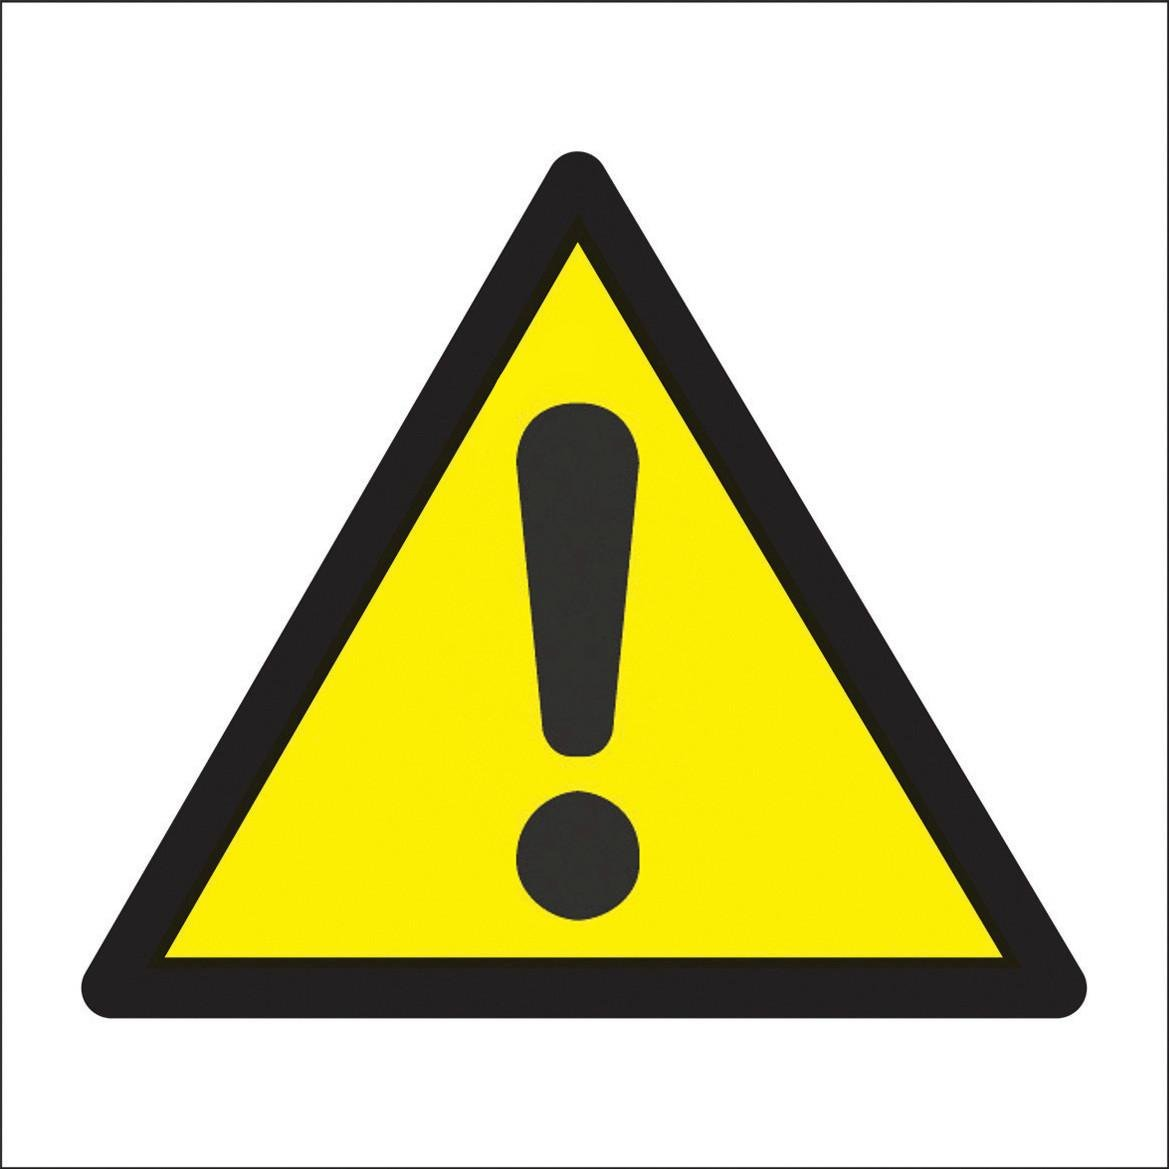 Island In Kitchen Hazard Logo Sign Large 400 X 400hmm Rigid Plastic